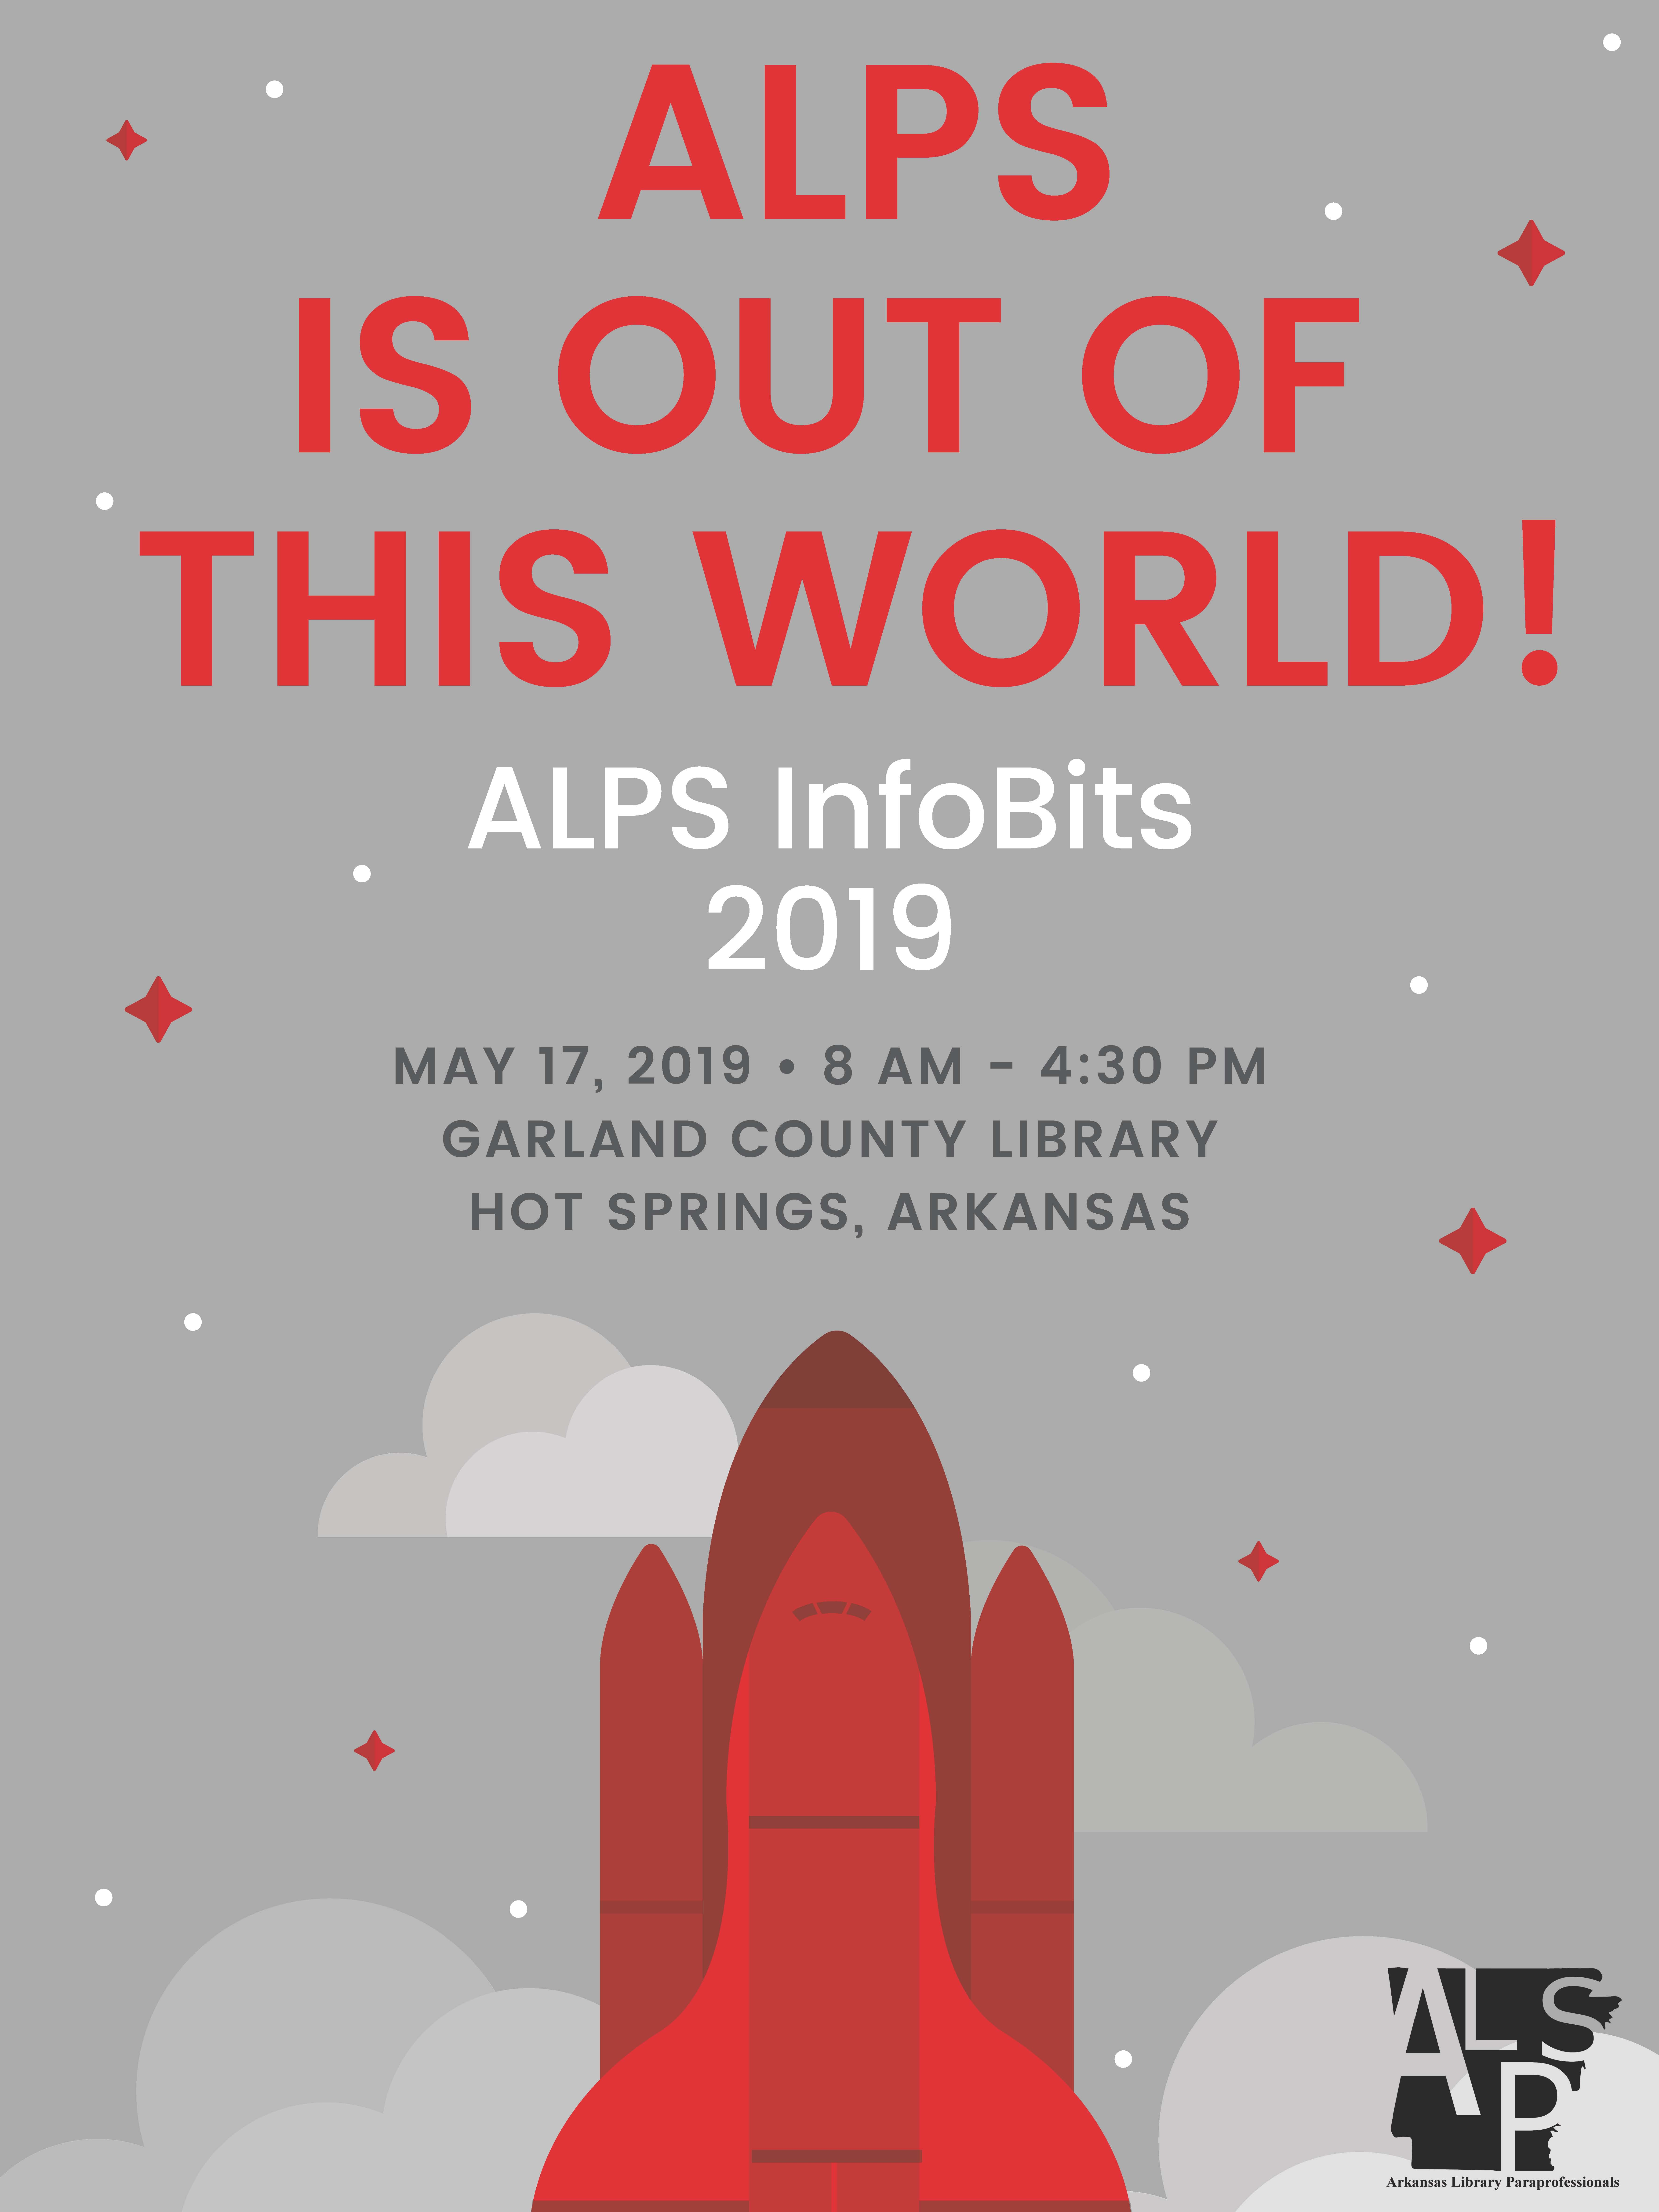 ALPS Infobits Flyer